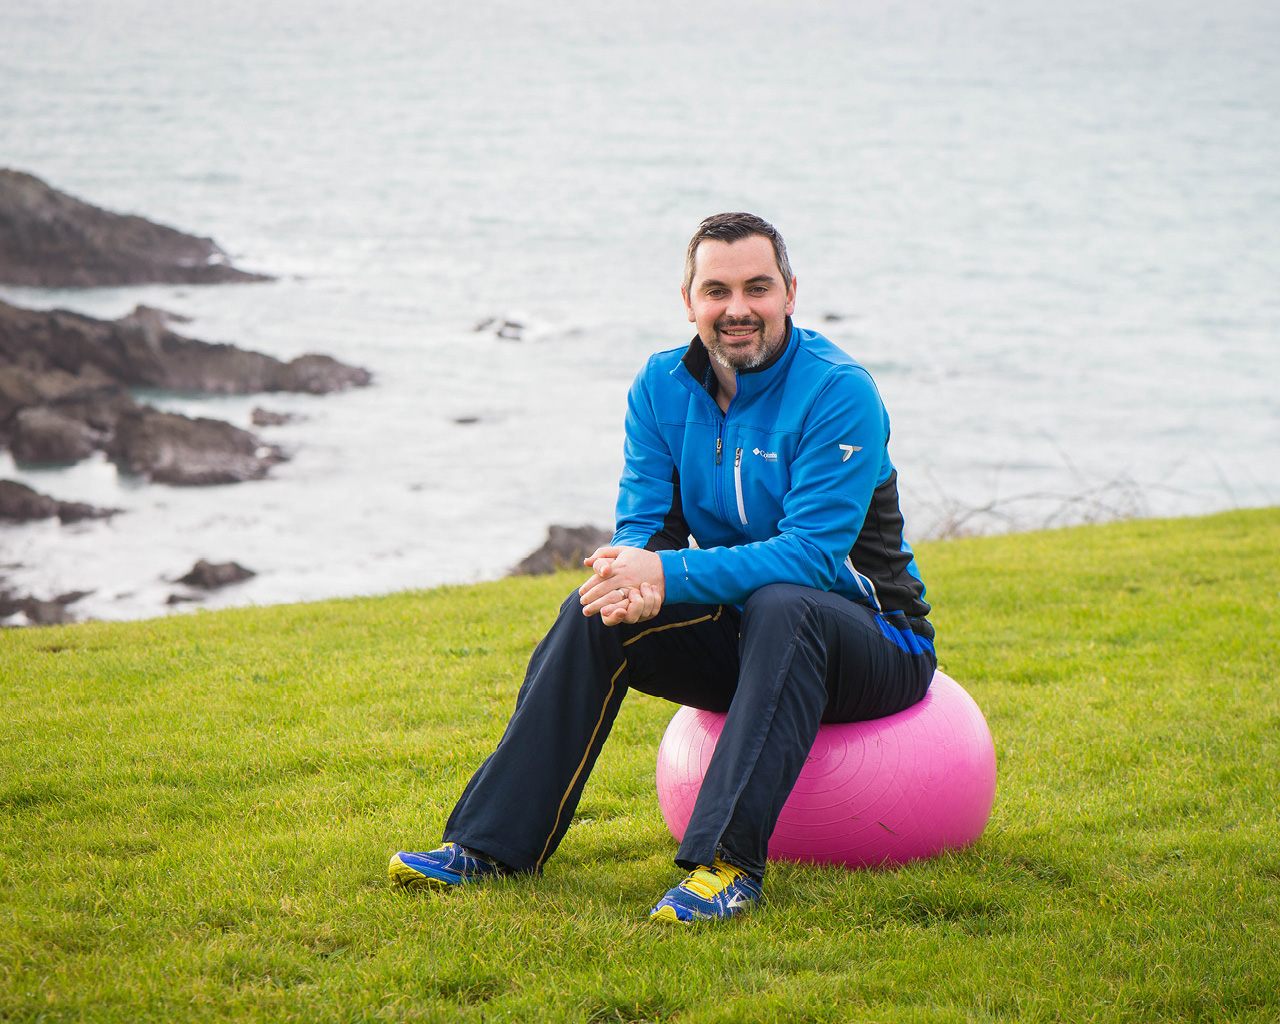 Karl Henry sitting on exercise in a scenic, beachside setting